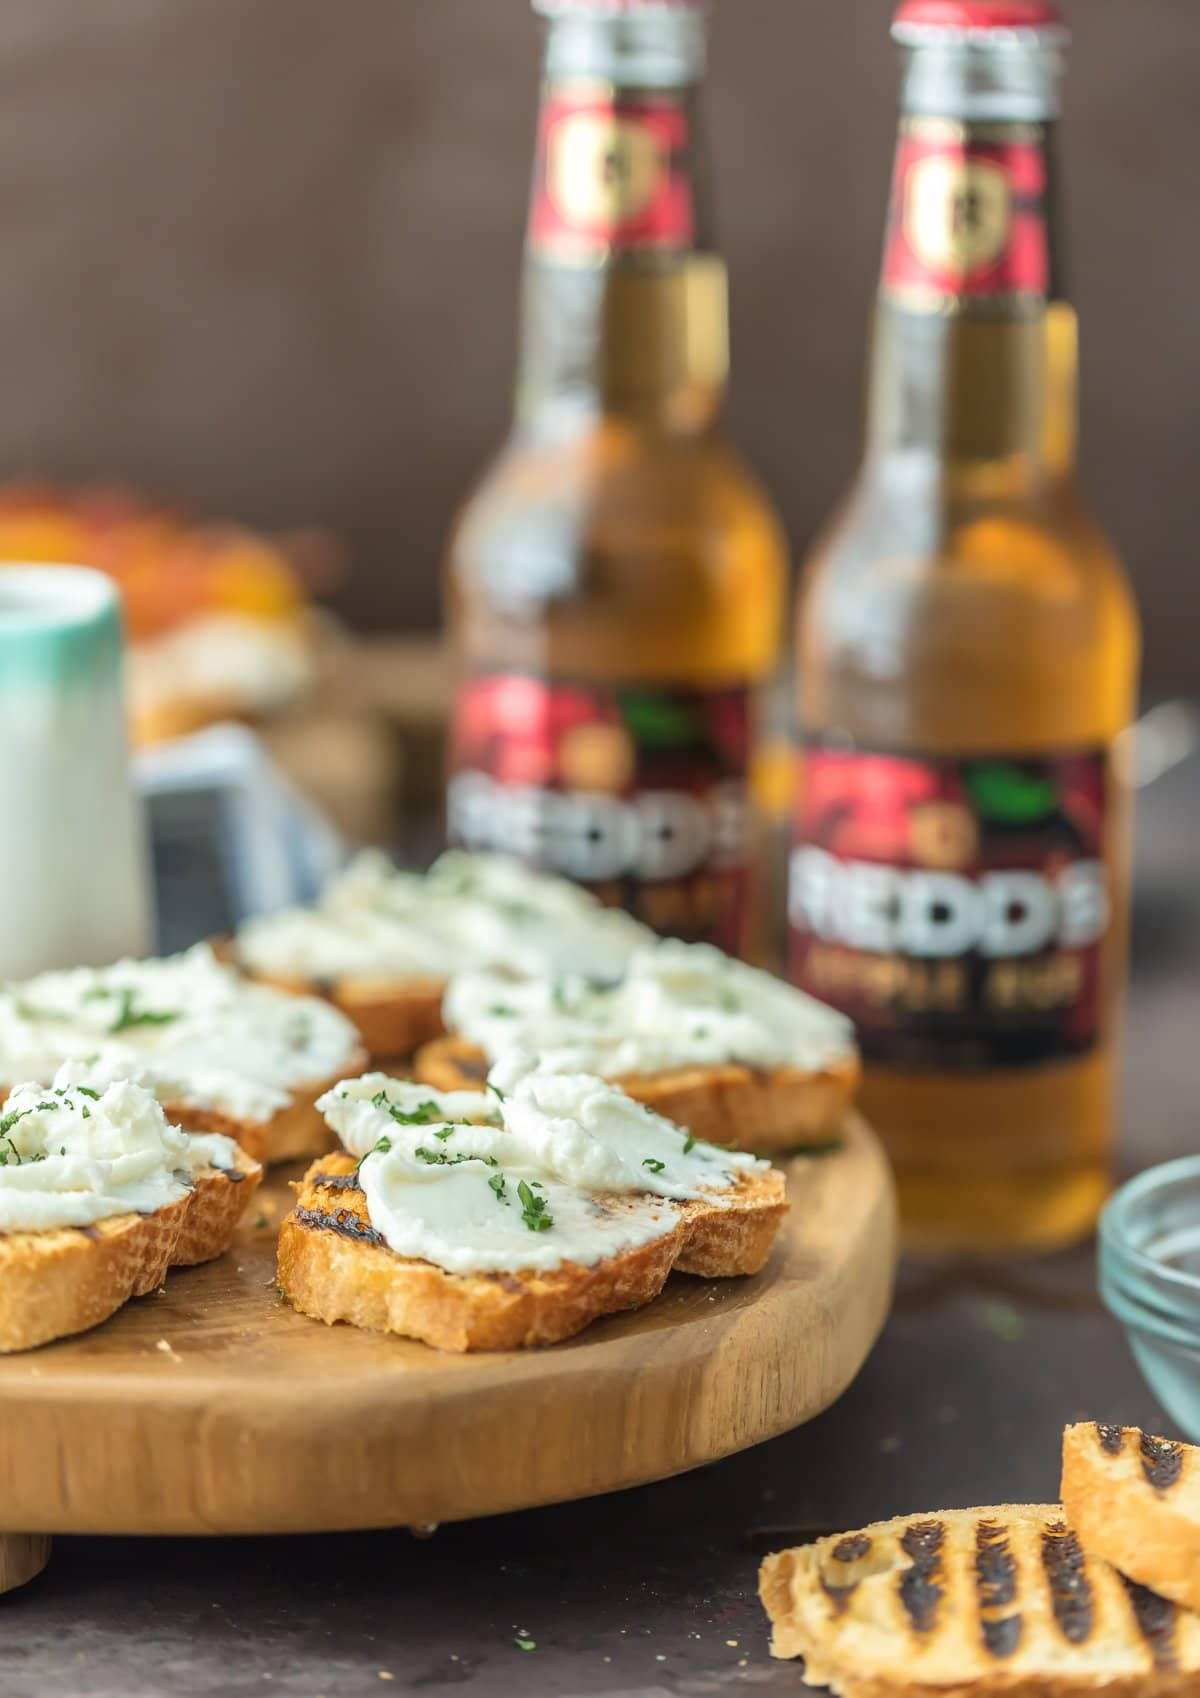 Whipped Goat Cheese Appetizers paired with Apple Ale